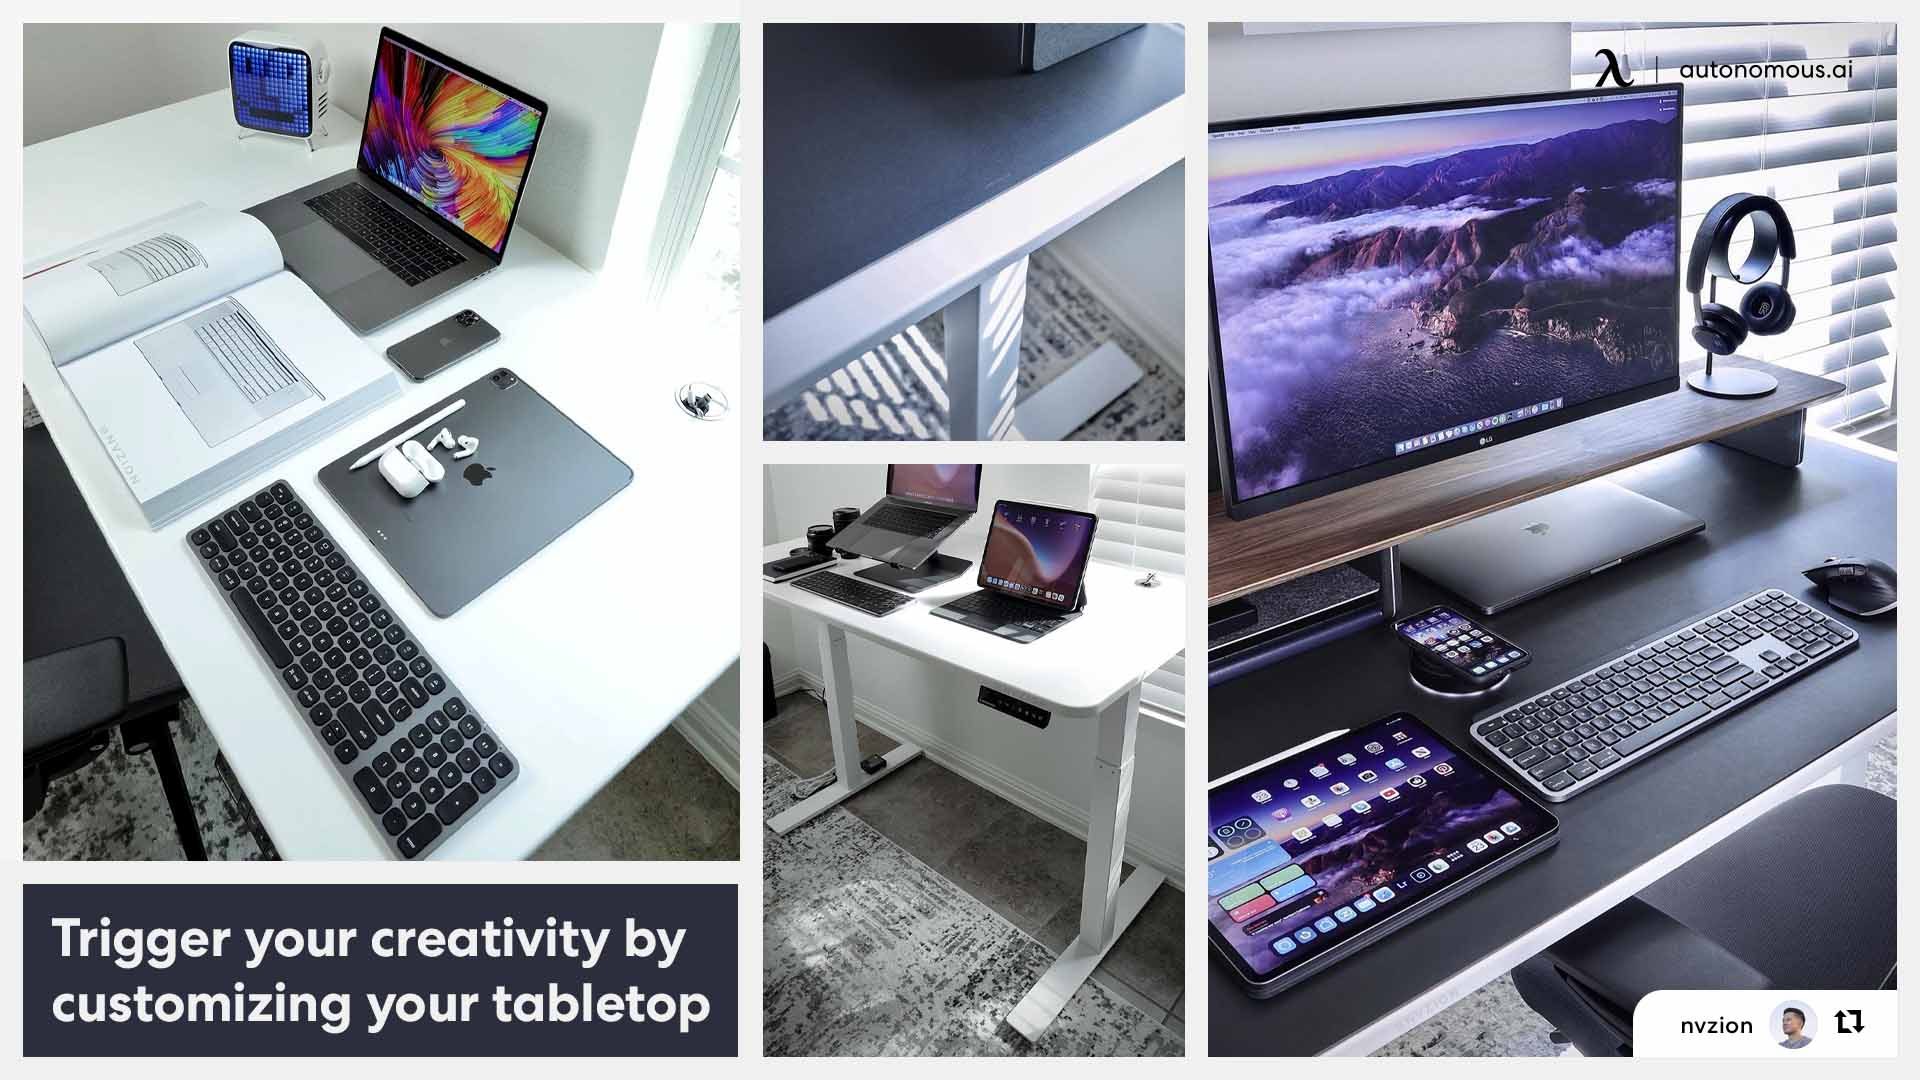 Customize your tabletop